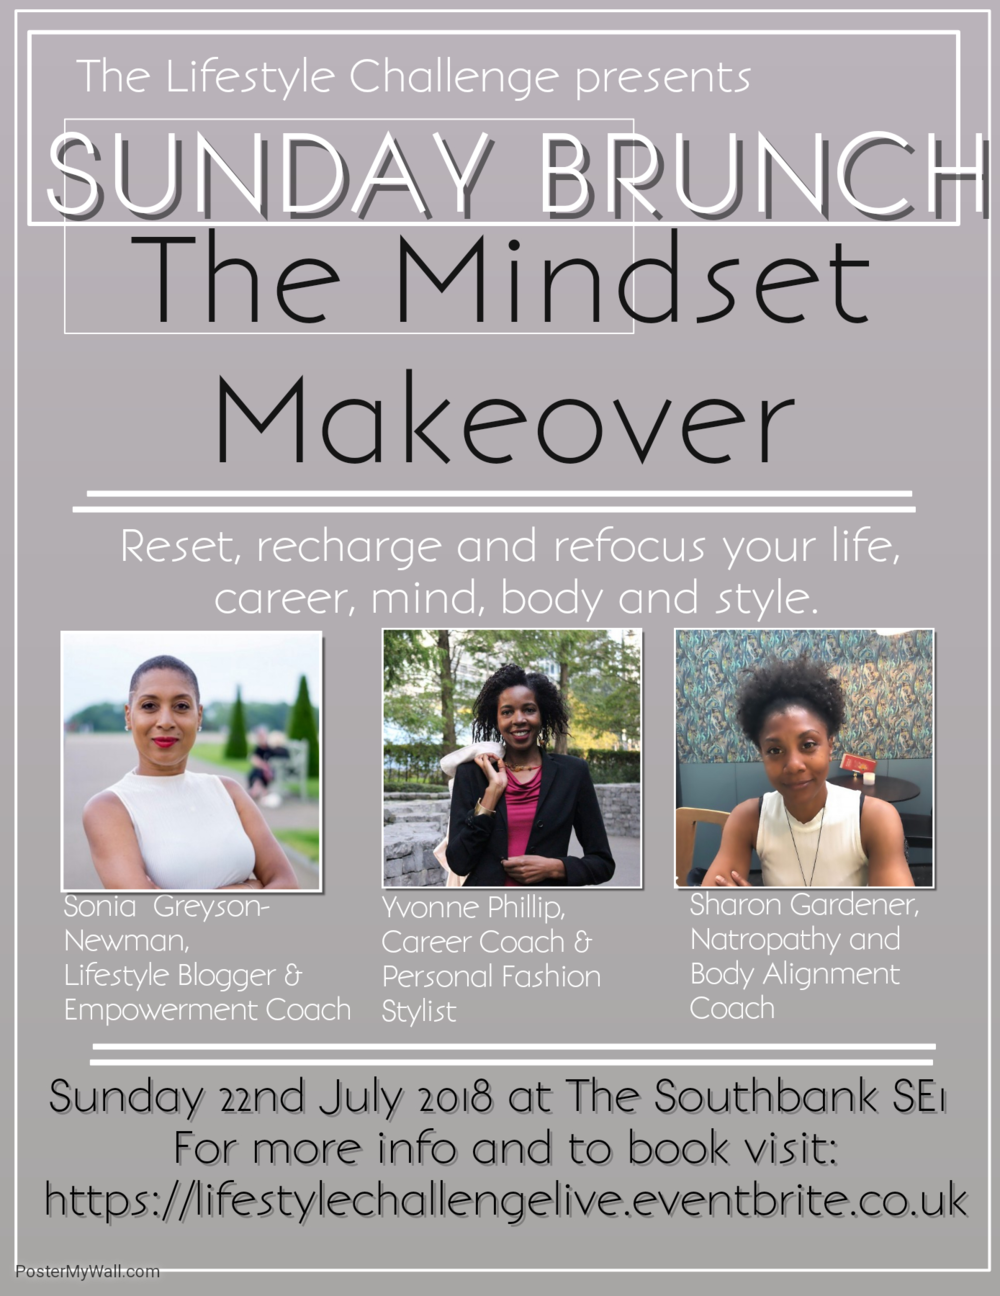 www.coreoflife.co.uk - Sunday Brunch - Mindset Maker